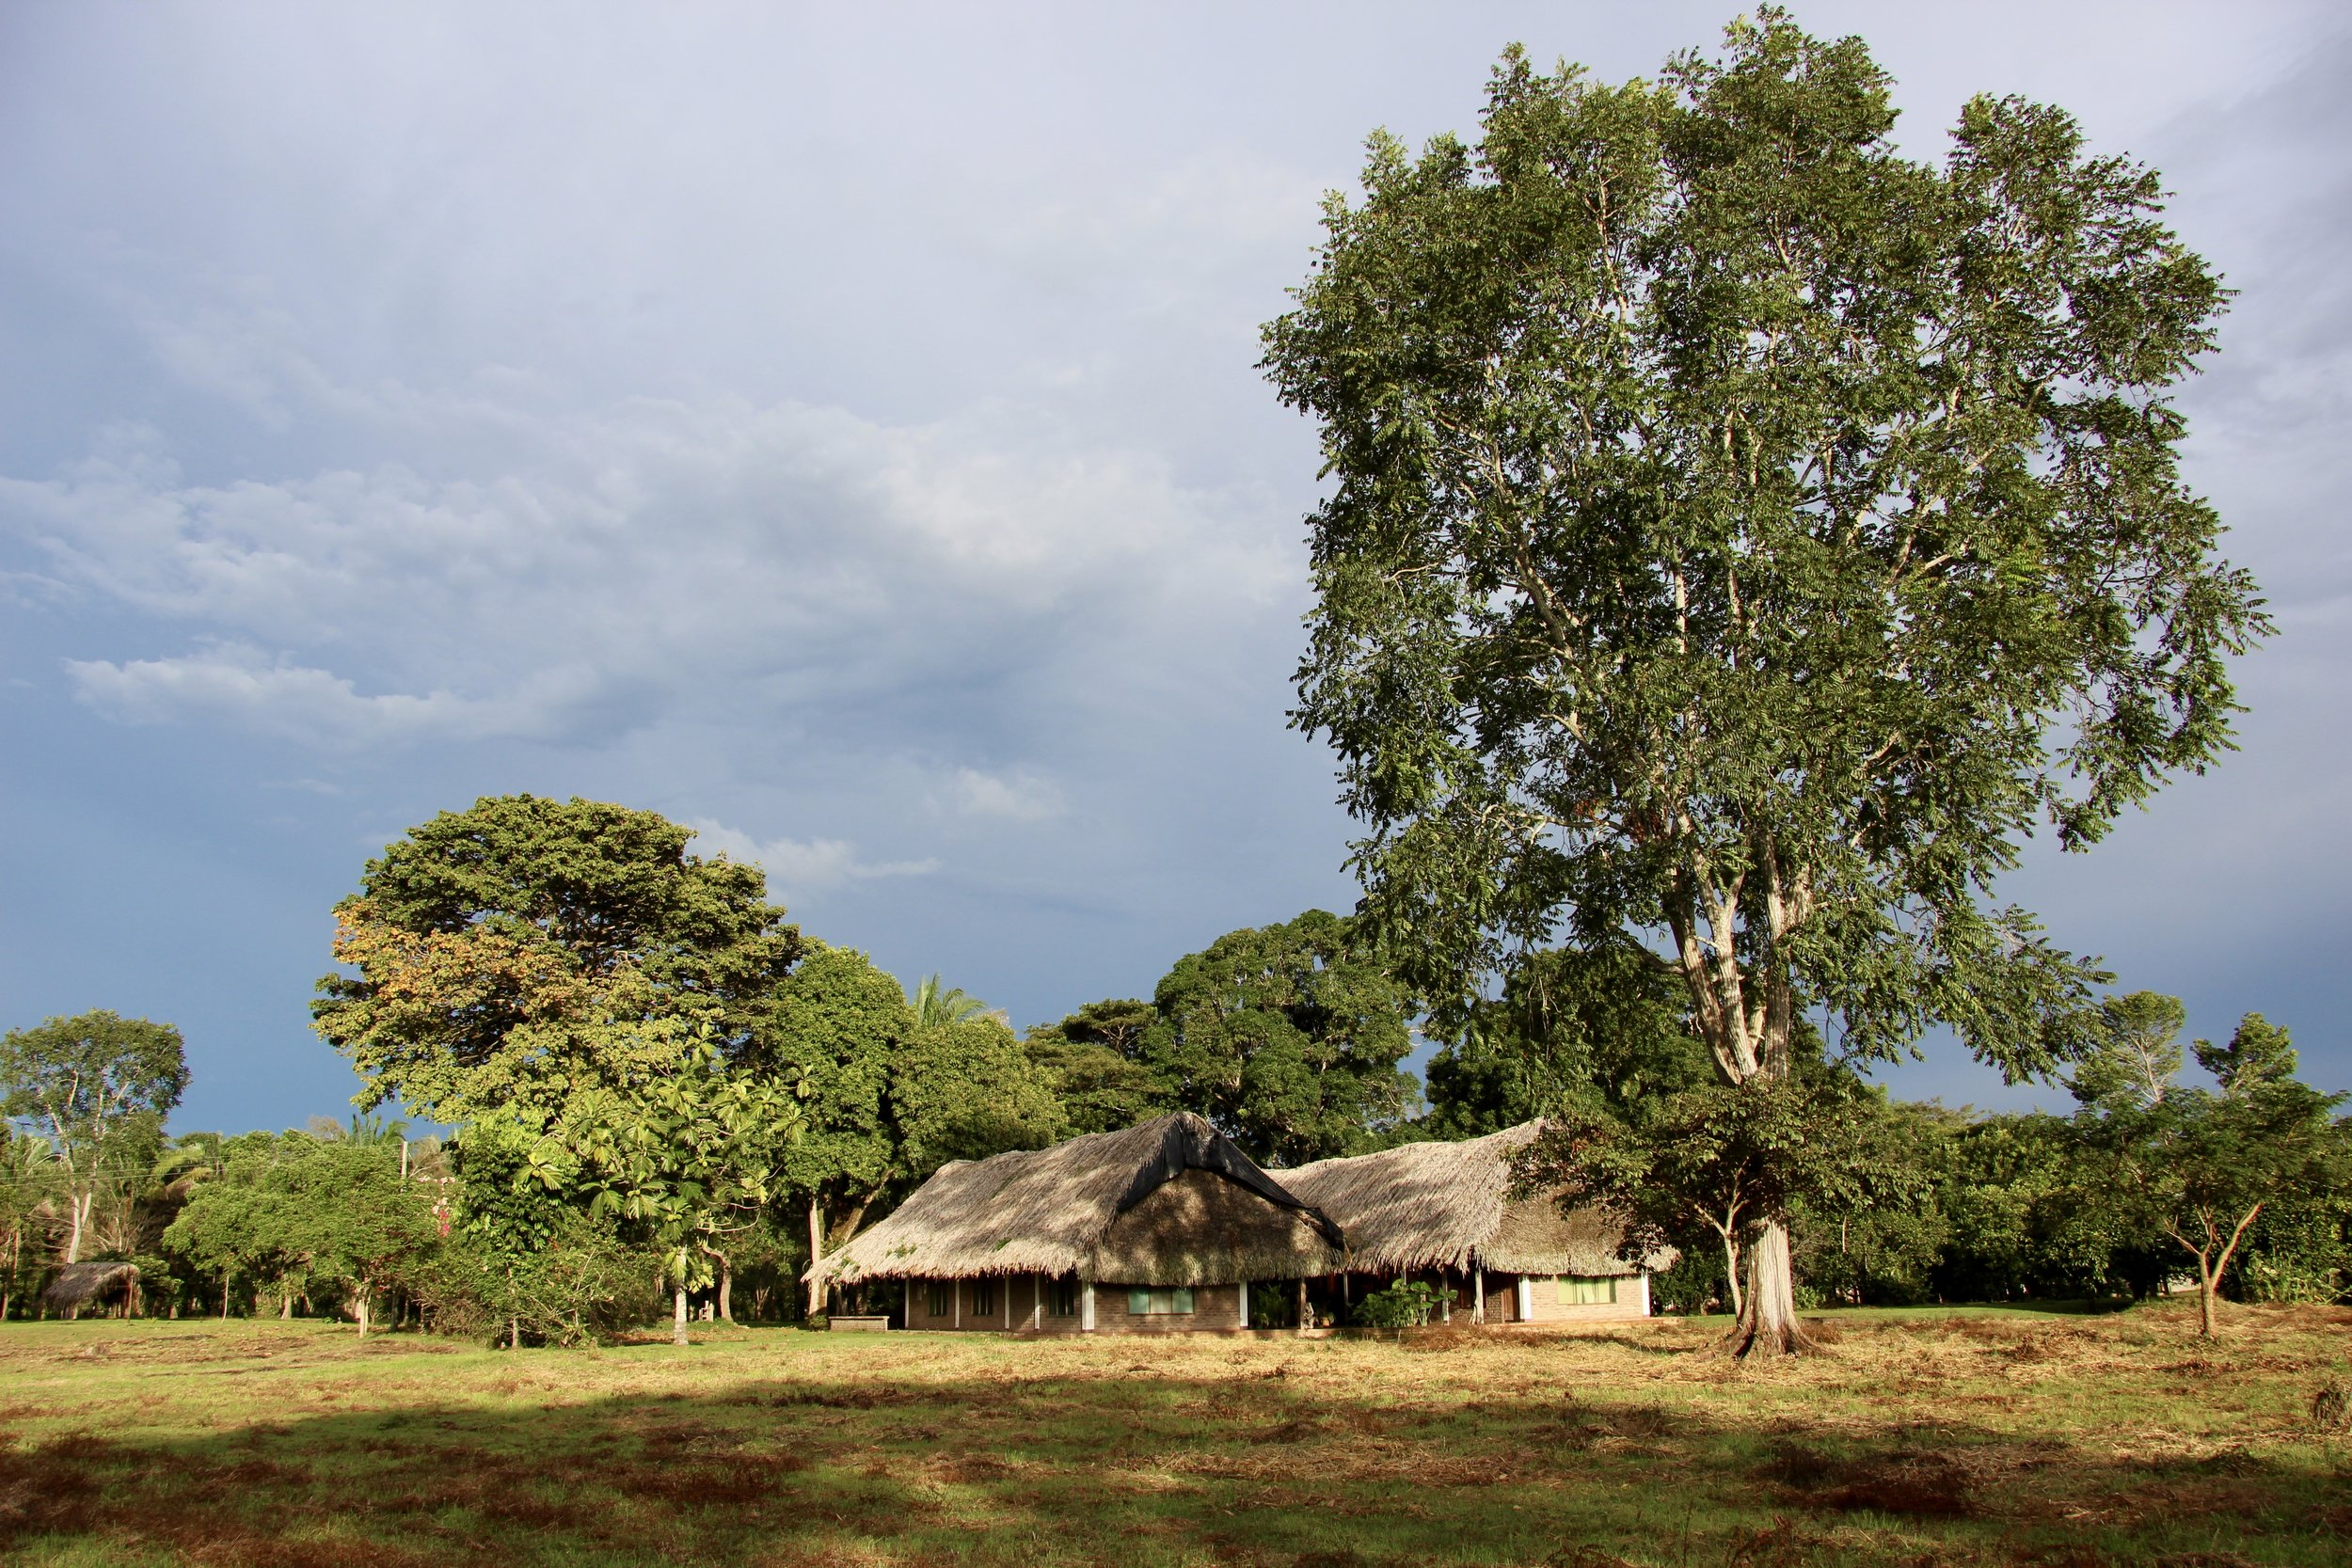 Here's the property we stayed at. The only neighbors they have are the howler monkeys!